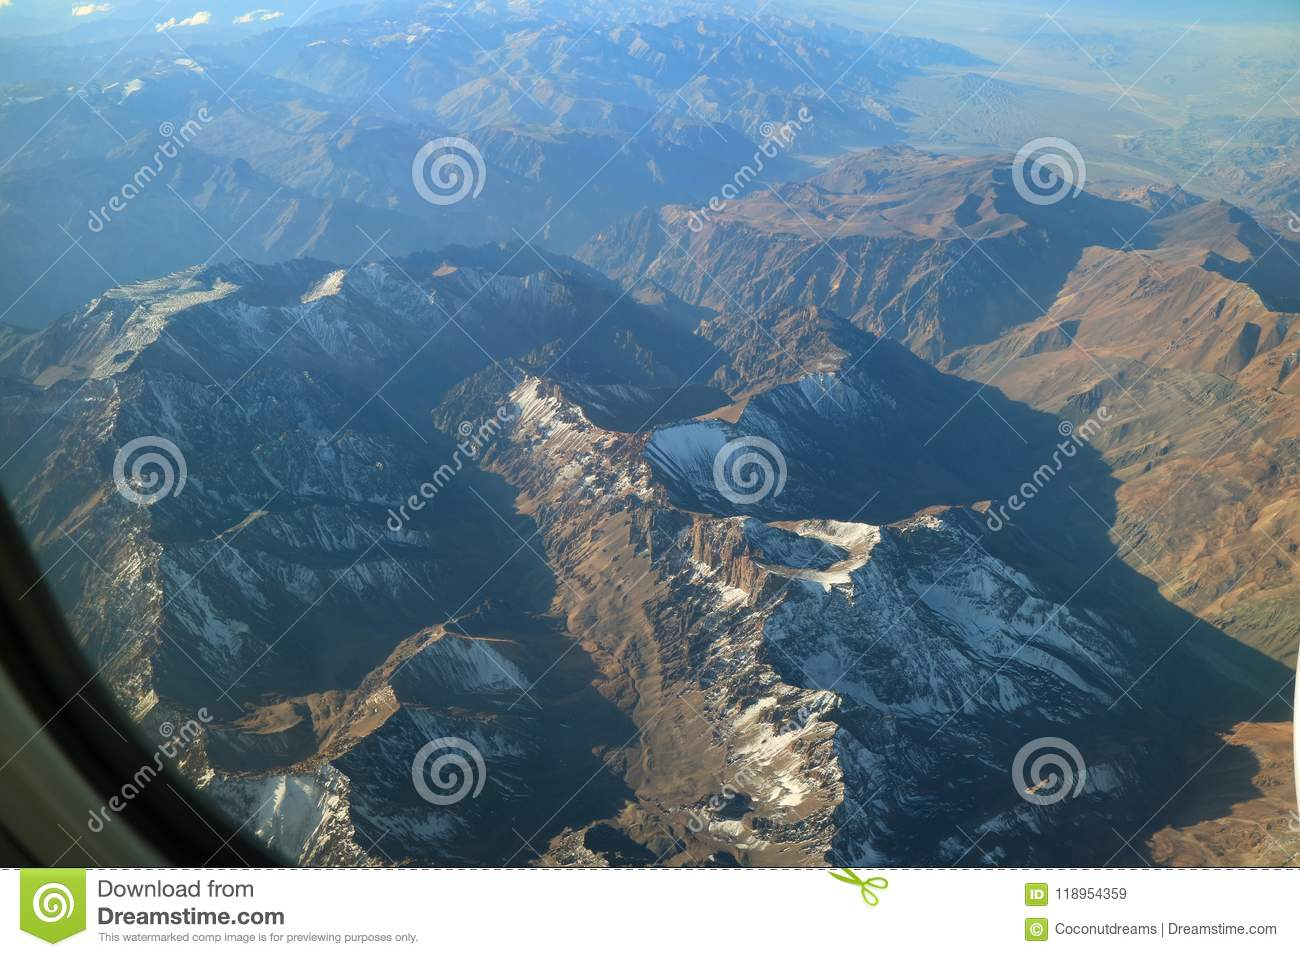 Beautiful aerial view of snow capped mountain range seen from airplane window